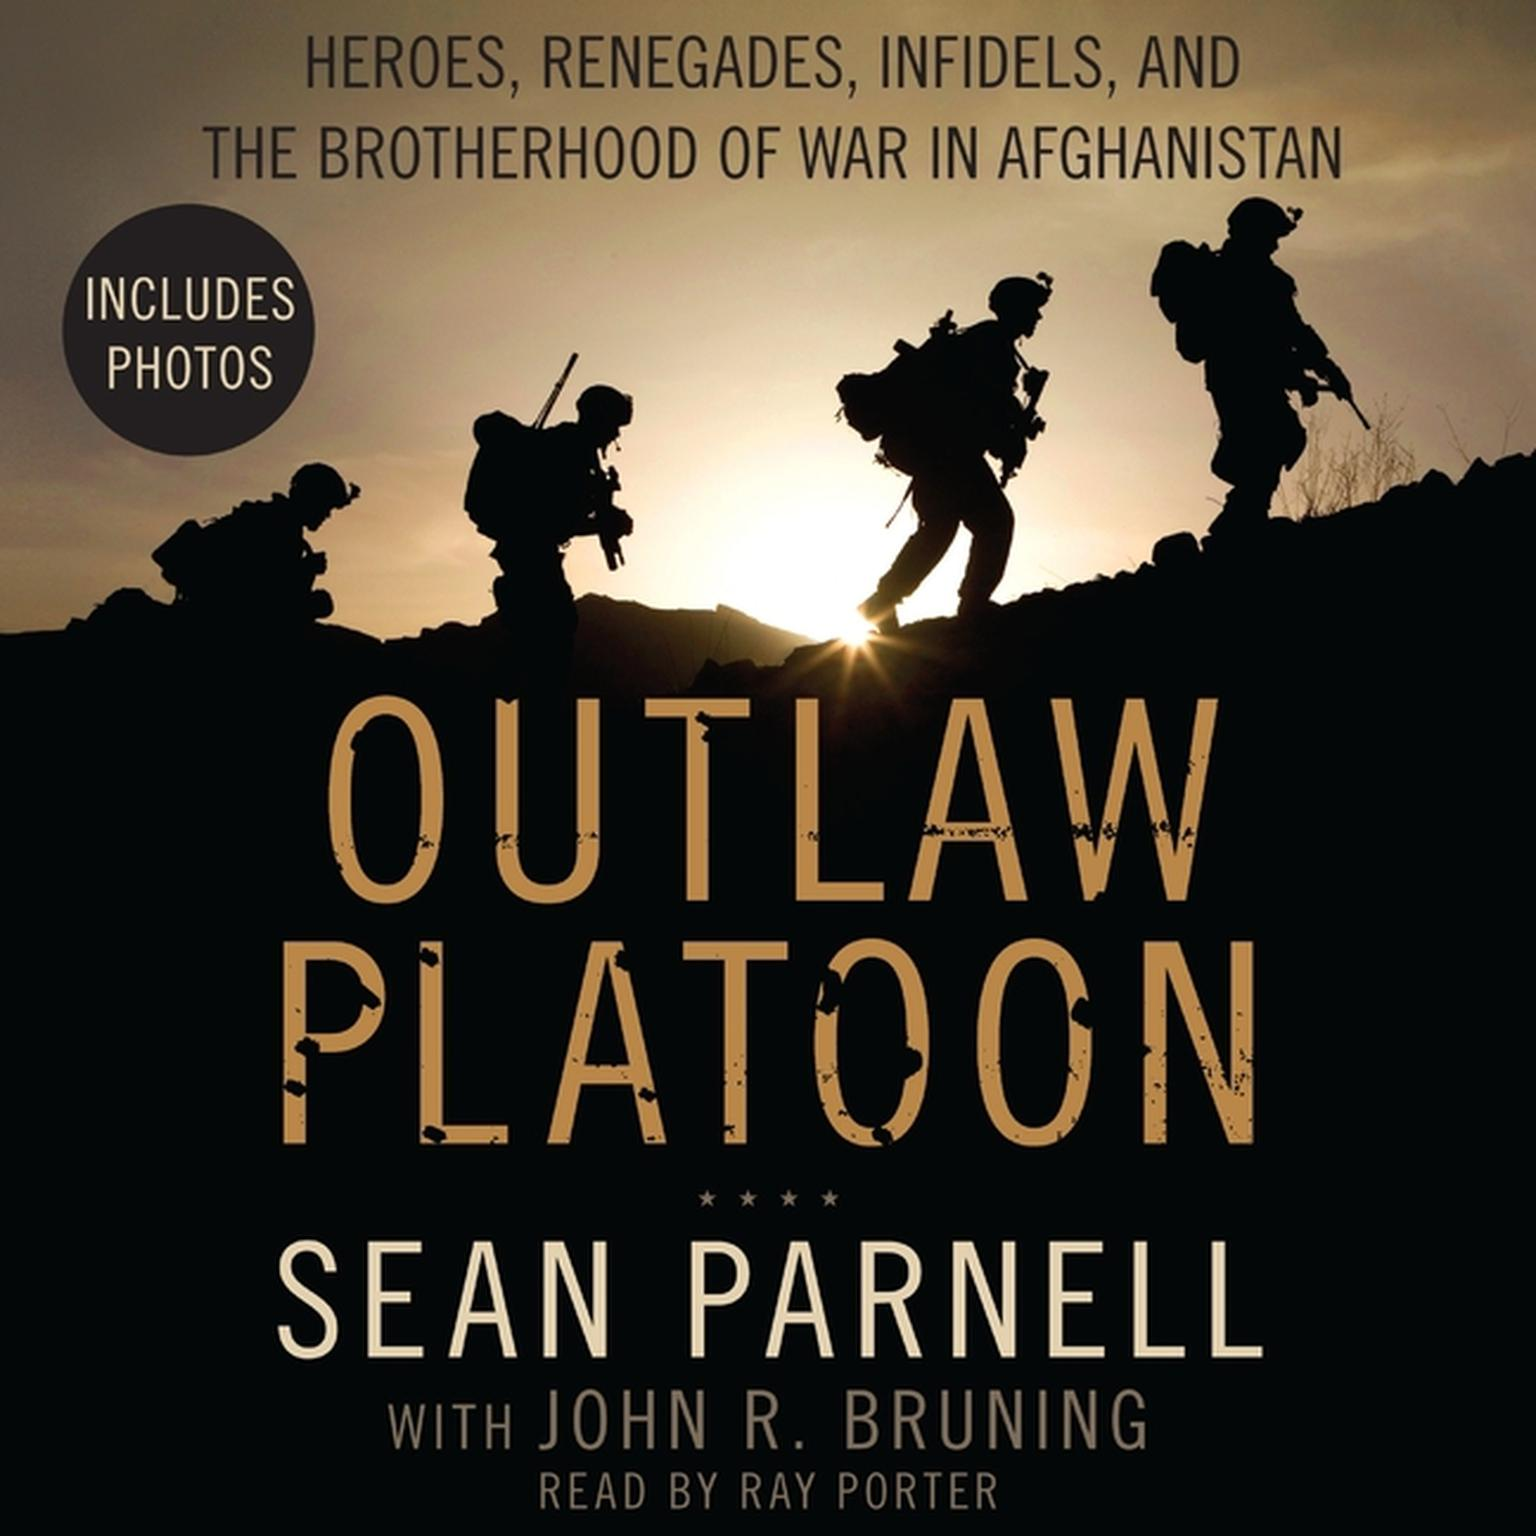 Printable Outlaw Platoon: Heroes, Renegades, Infidels, and the Brotherhood of War in Afghanistan Audiobook Cover Art